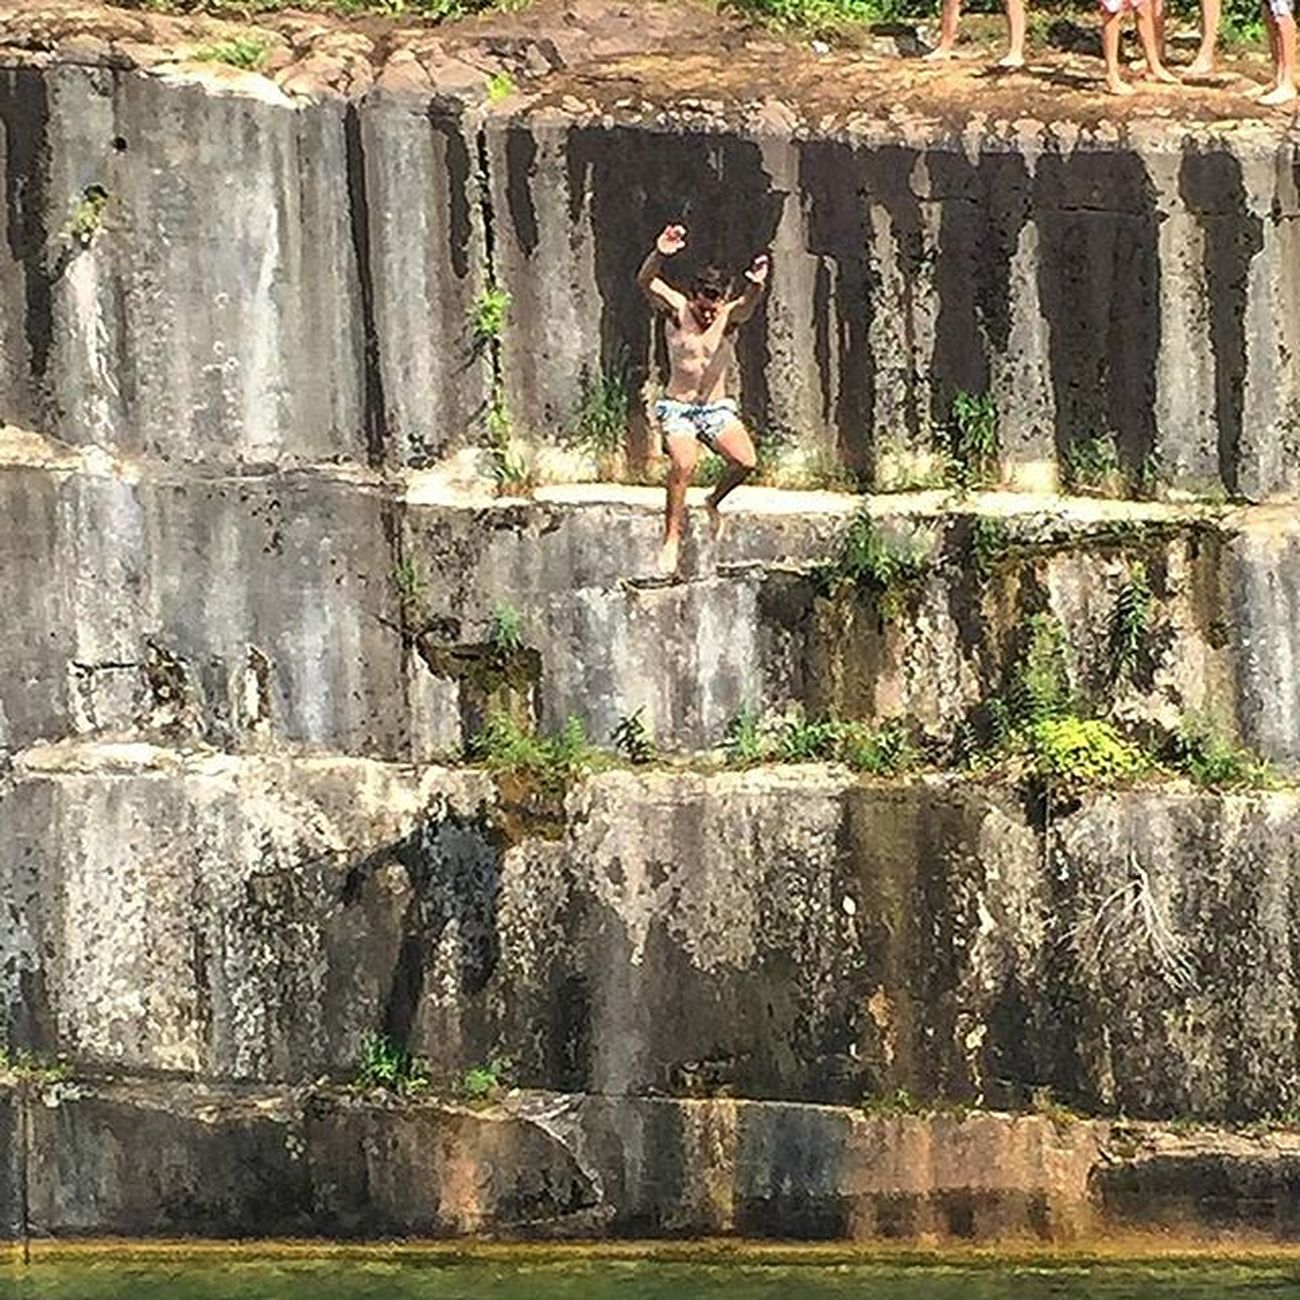 Beating fears one step at a time. Chubbies CliffJumping 30footer AND shout out to @shannon_rose96 for her mad camera skills